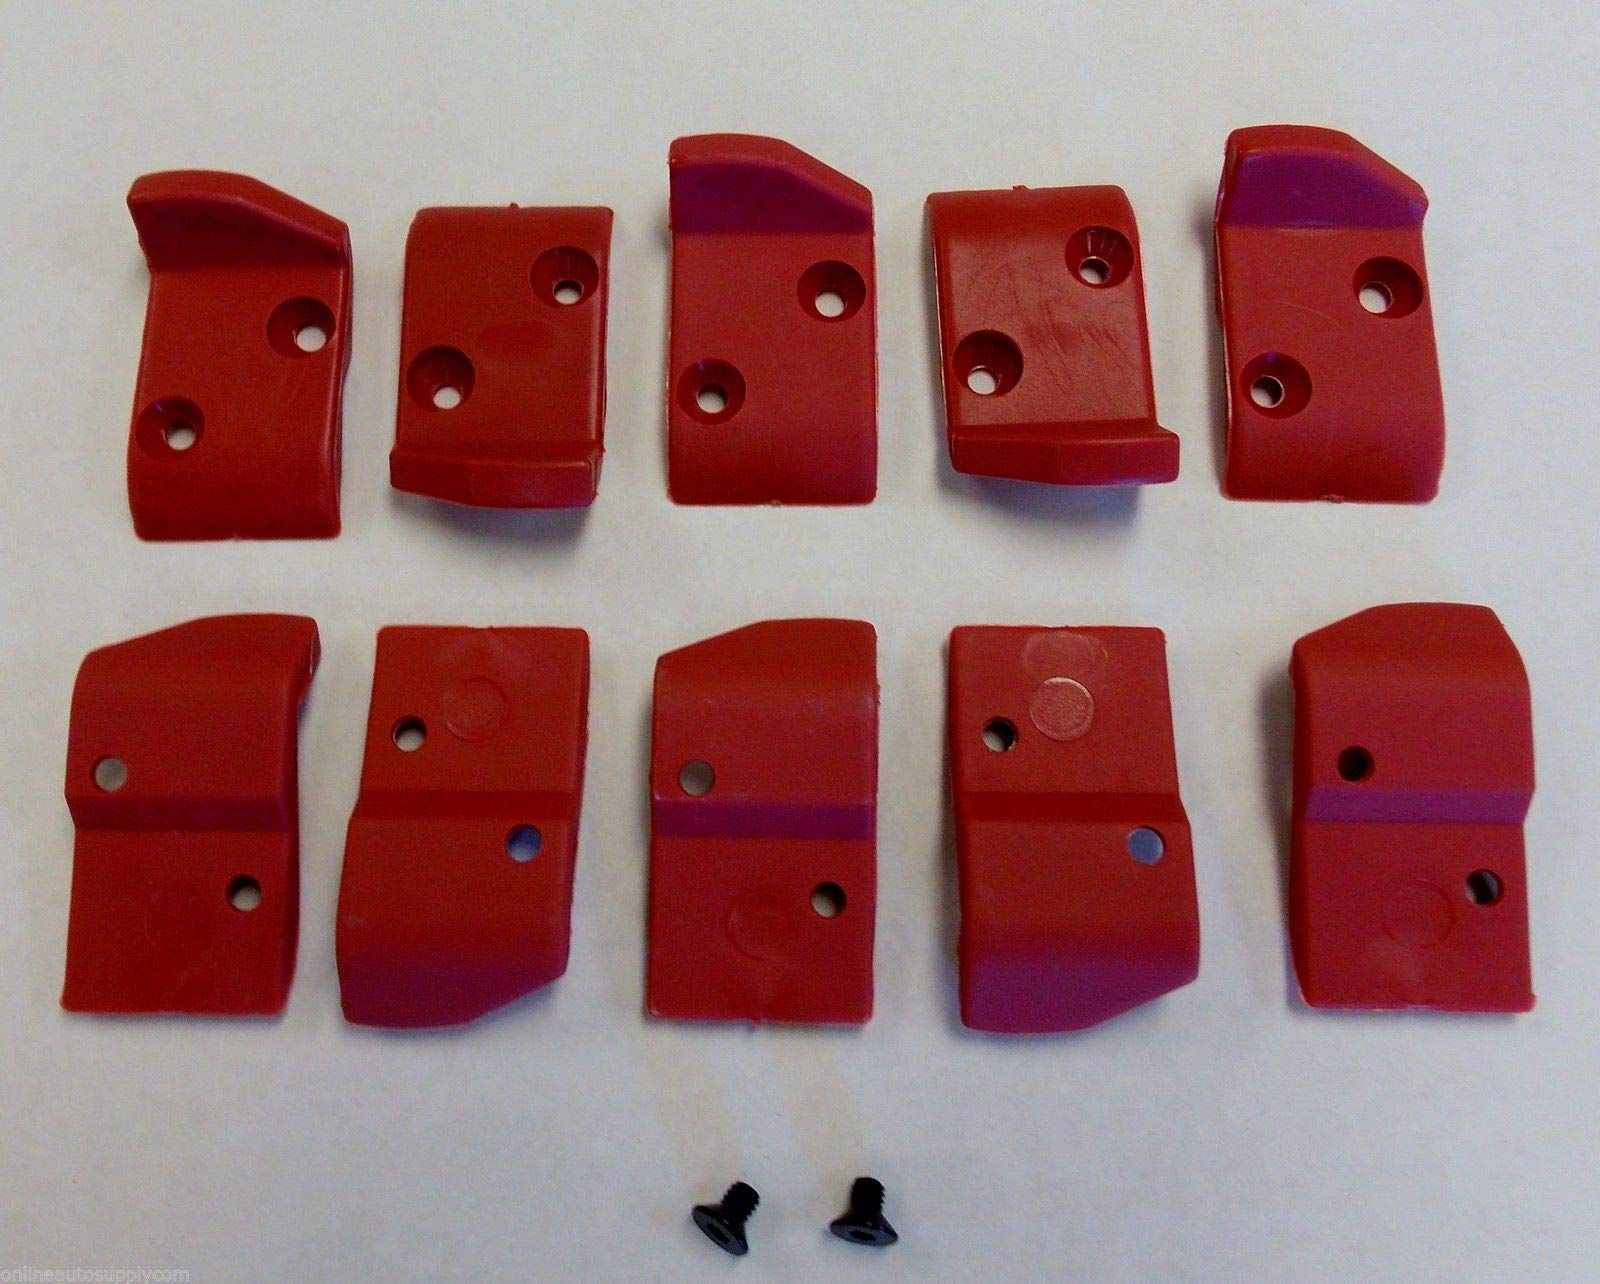 Online Auto Supply Hunter Leverless Inserts Plastic Protectors Insert TCX575 TCX565 RP11-8-11400293 by Online Auto Supply